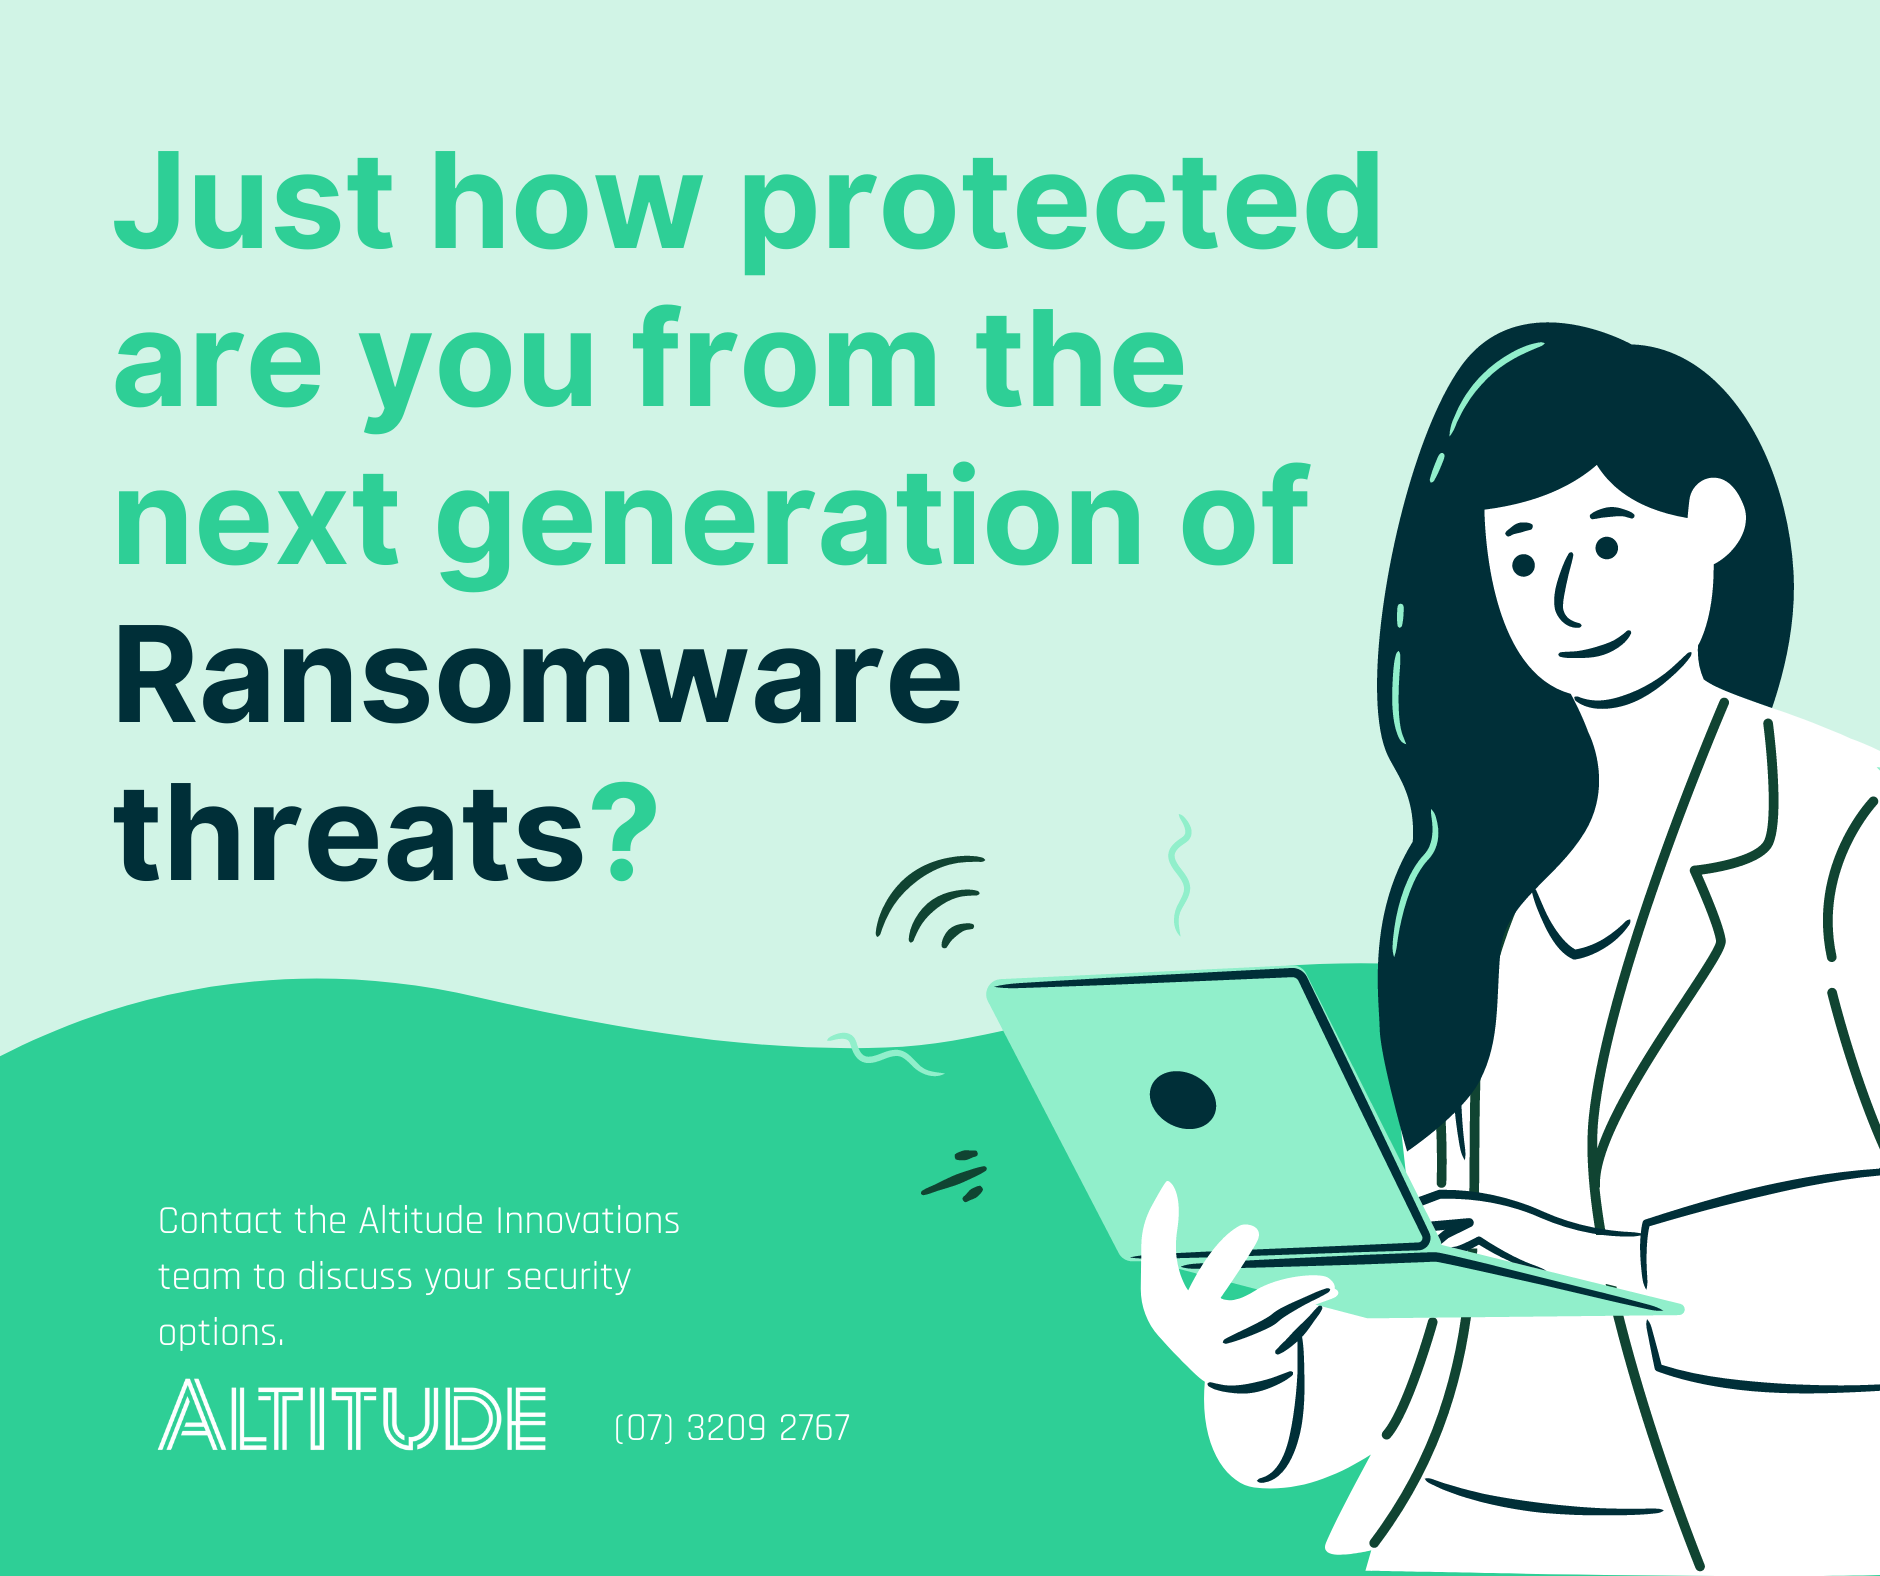 Just how protected are you from the next generation of Ransomware threats?